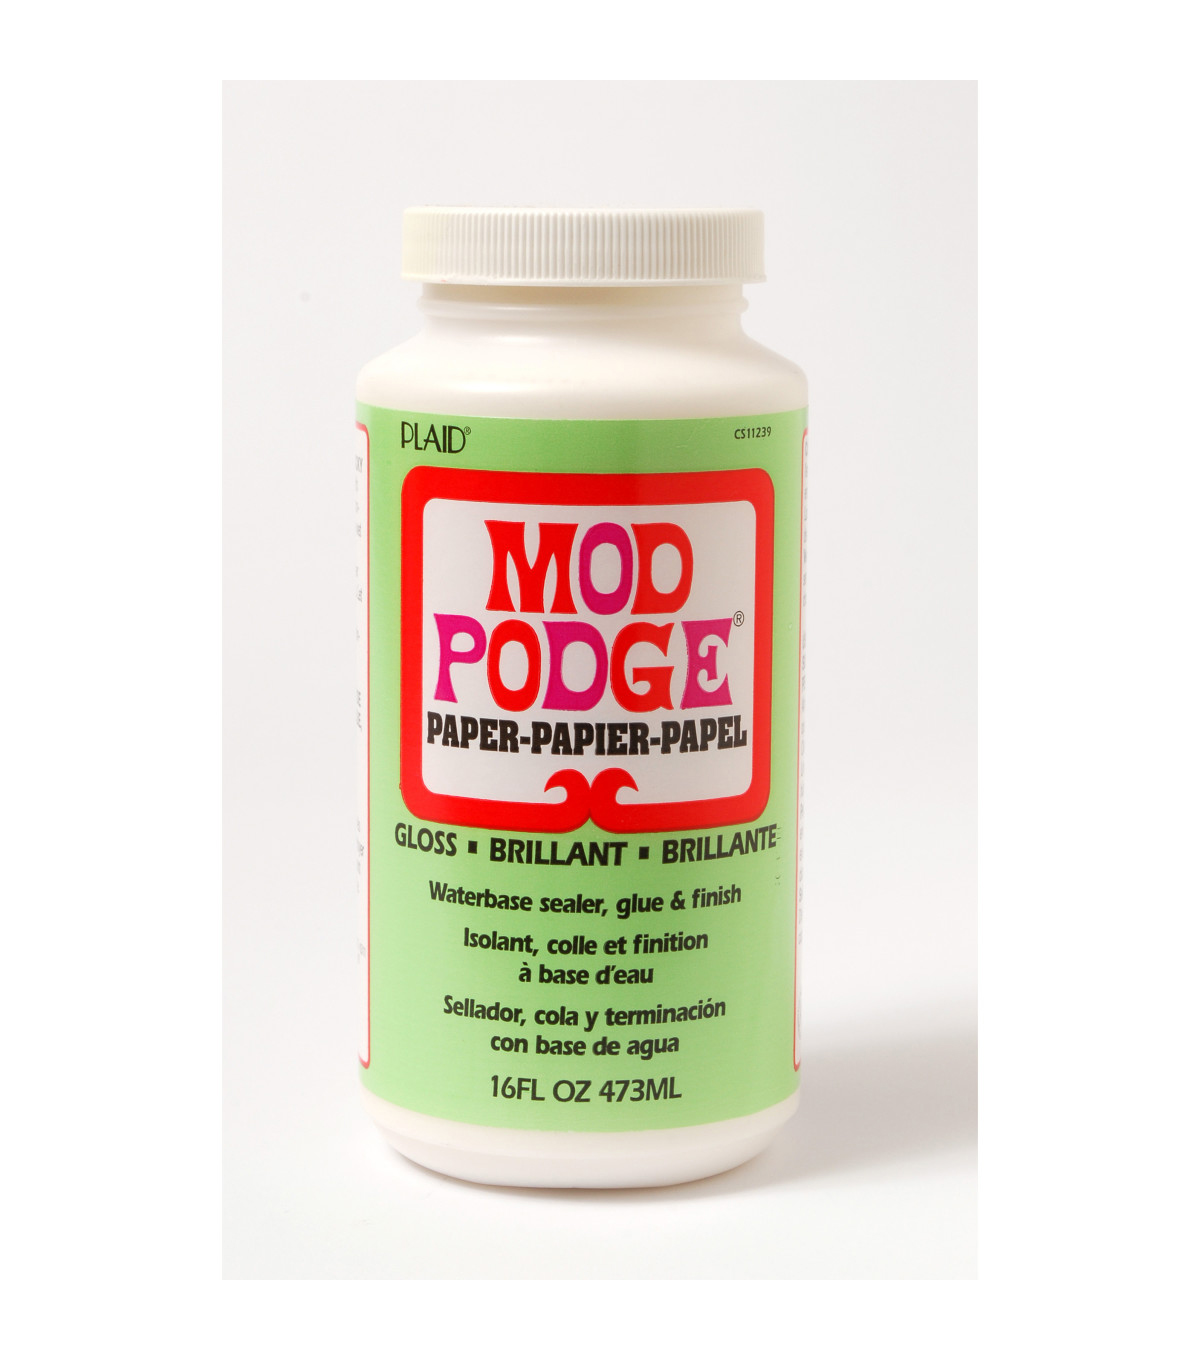 Mod Podge Paper Gloss Finish